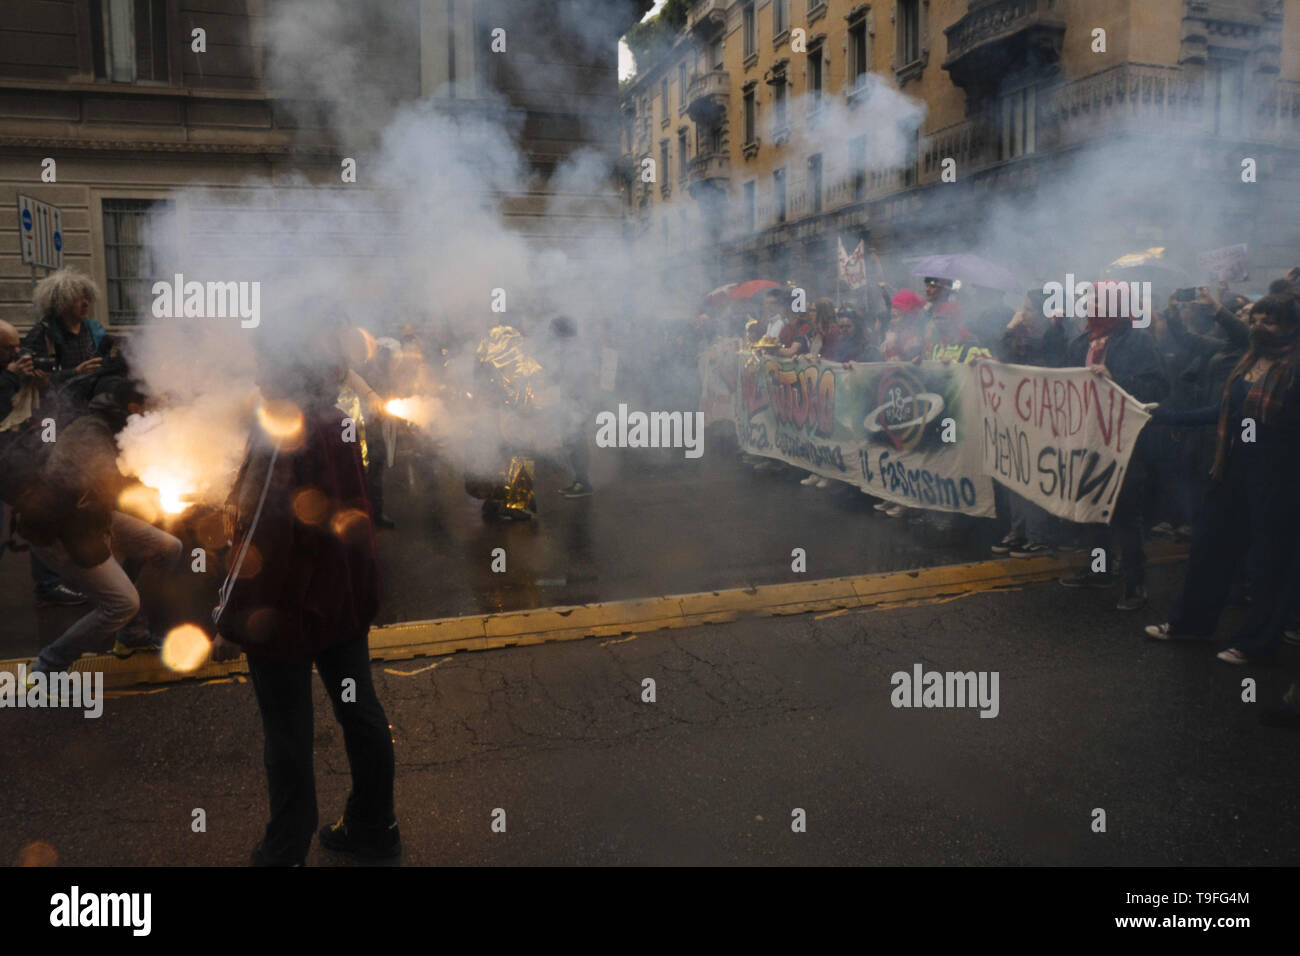 Milano, Lombardia, Italy. 18th May, 2019. A woman seen burning flares during the protest.The feminist movement Non Una di Meno, together with other Italian associations, protested against the European election's closing meeting with Matteo Salvini, leader of the Populist Party the League and Italian Ministry of Interior and Vice Premier and Marine Le Pen and the uprising of fascism, far right, xenophobia and extremism in Europe. Credit: Valeria Ferraro/SOPA Images/ZUMA Wire/Alamy Live News - Stock Image